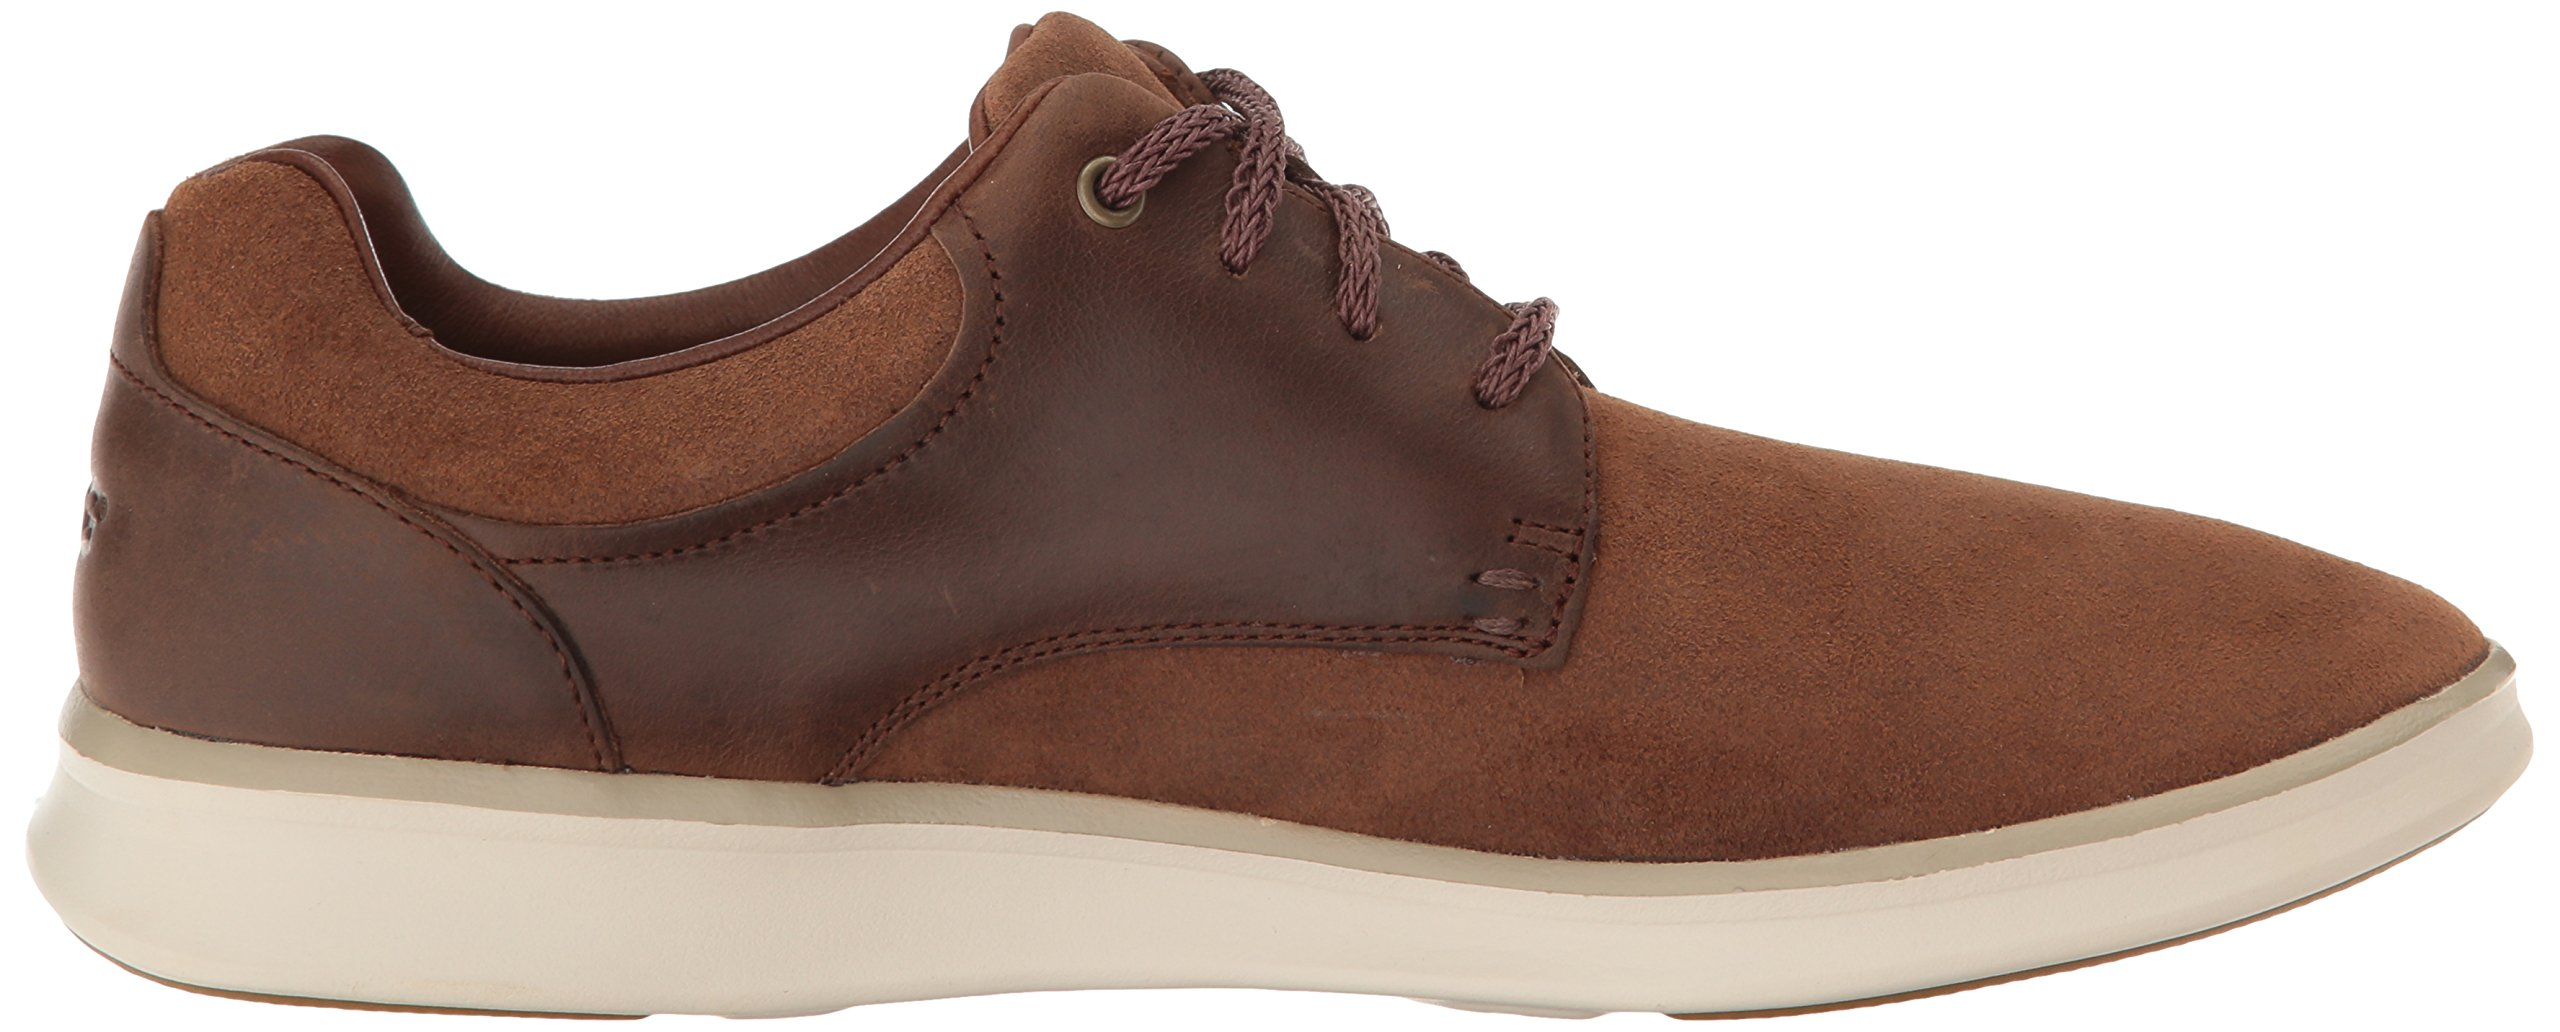 UGG Men's Hepner Fashion Sneaker Chestnut 11.5 M US by UGG (Image #7)